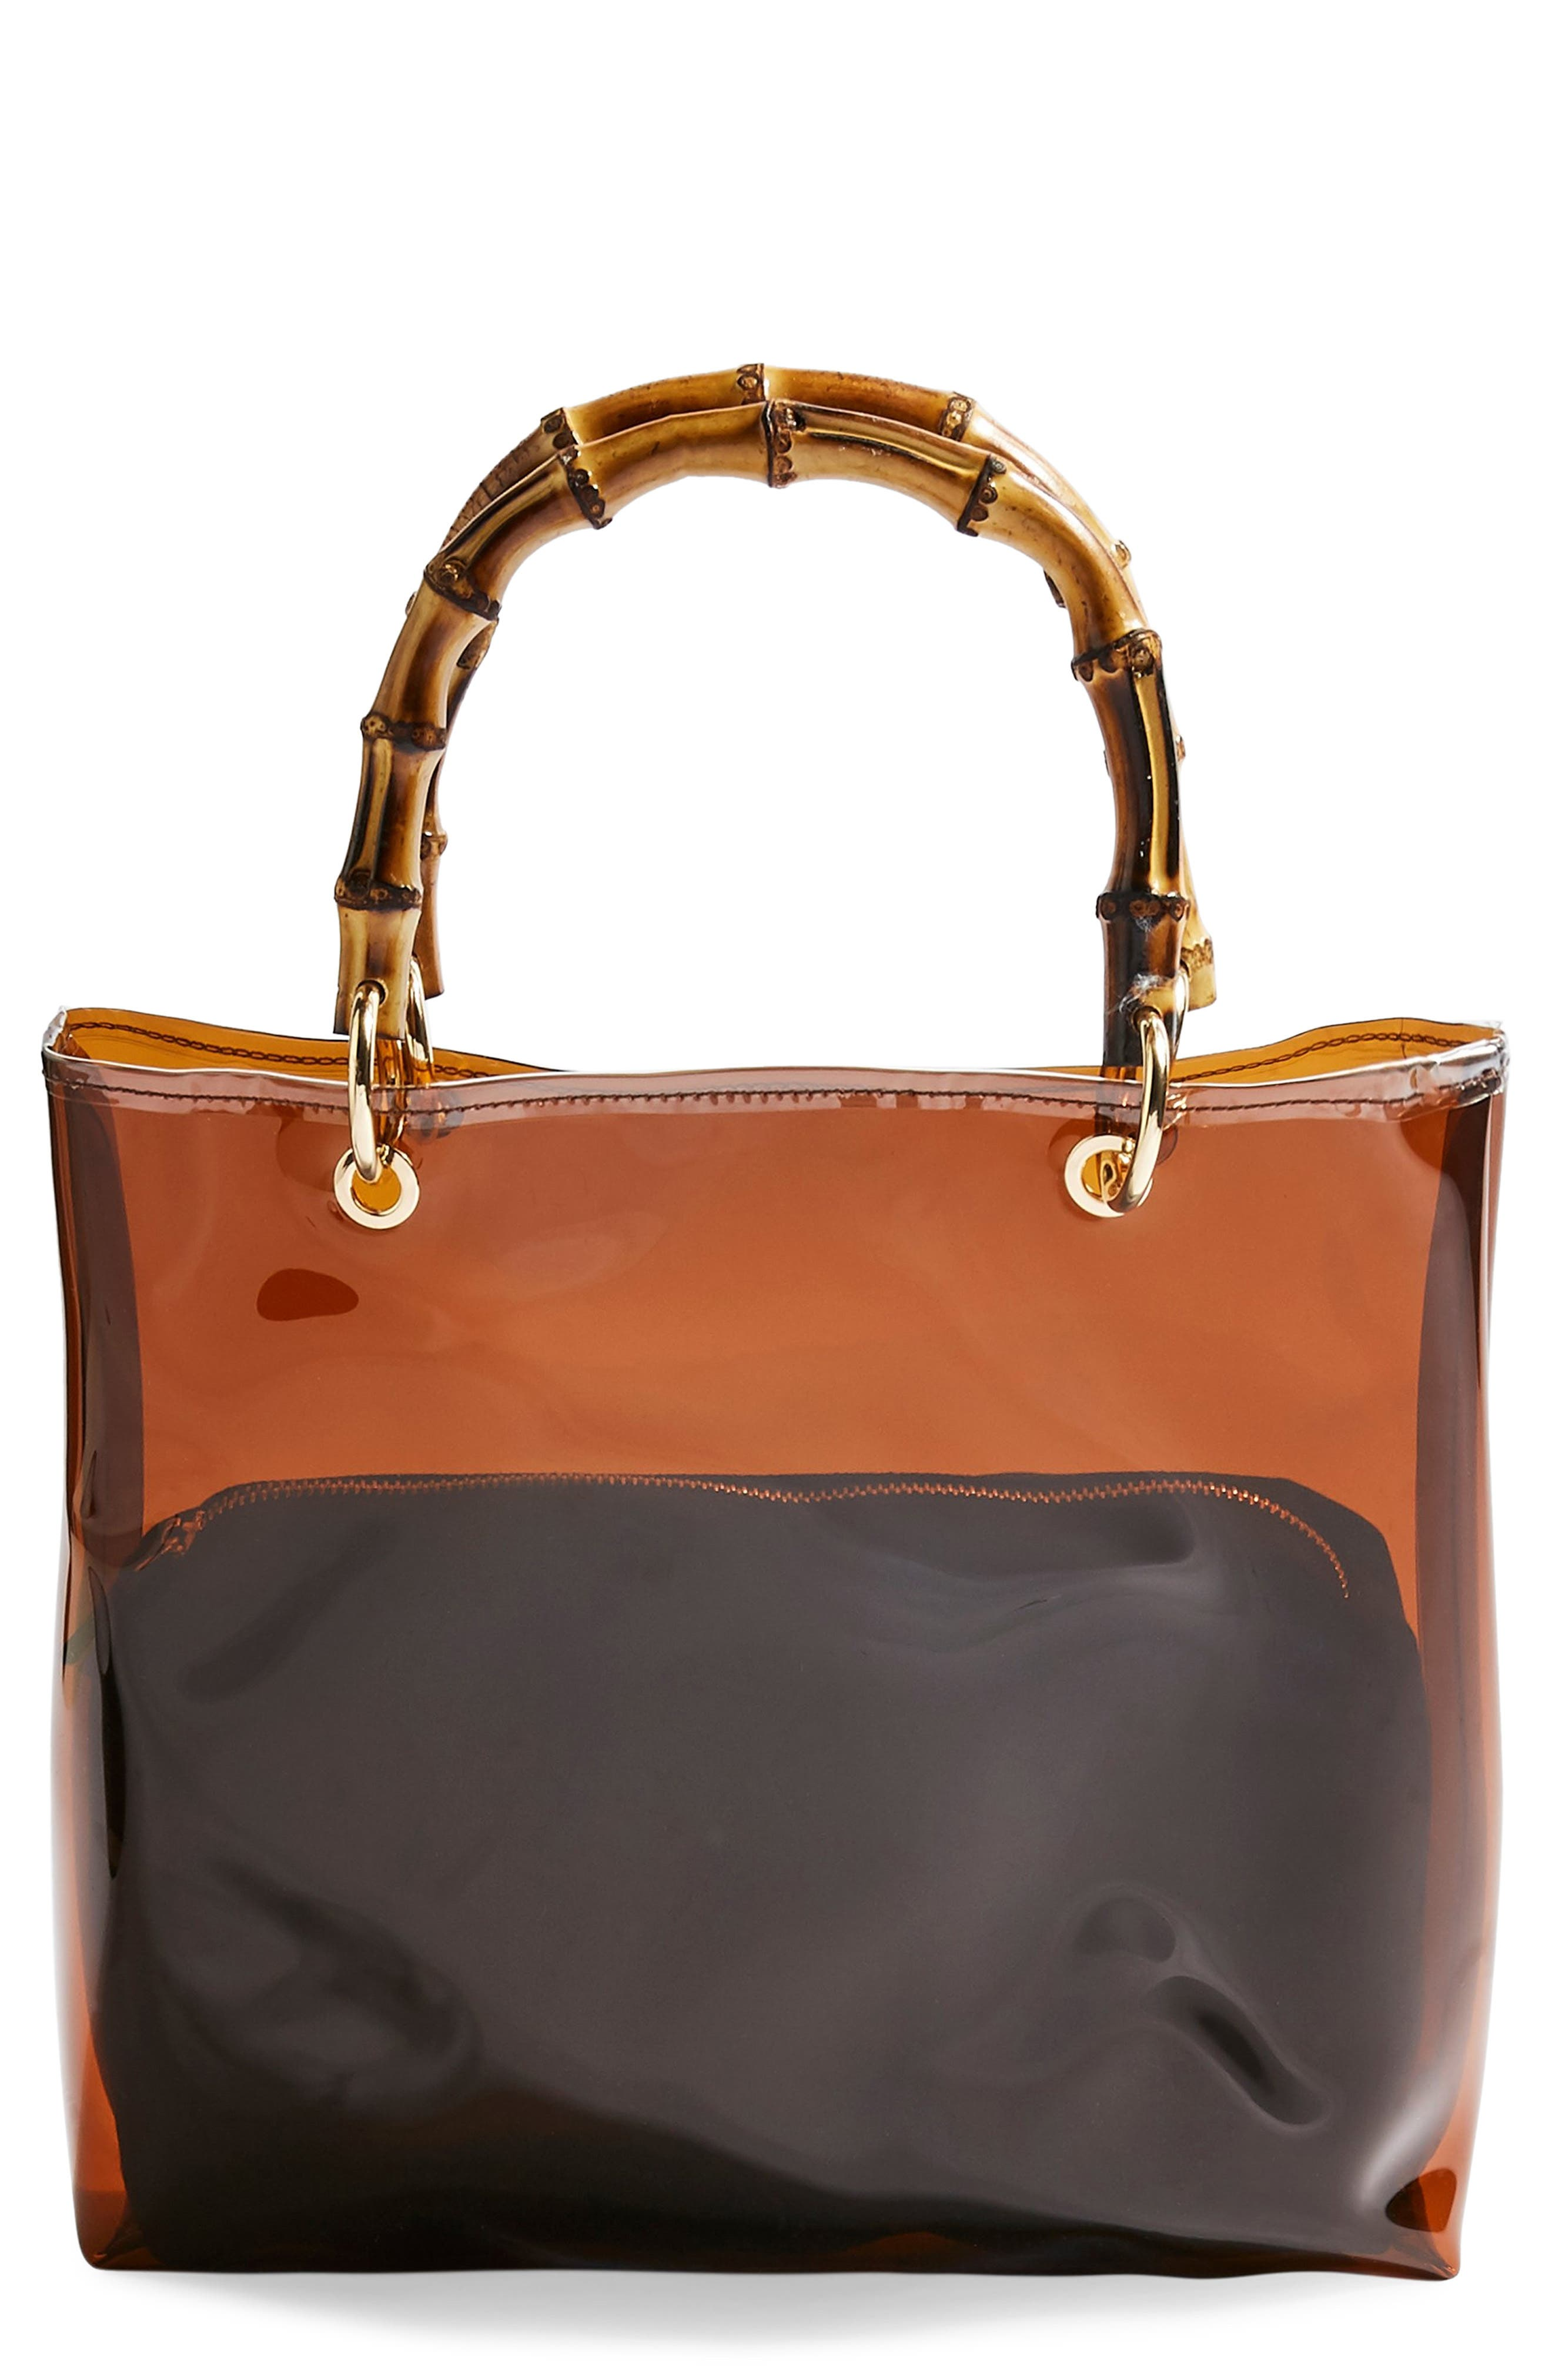 TOPSHOP, Mercy Top Handle Tote Bag, Main thumbnail 1, color, BROWN